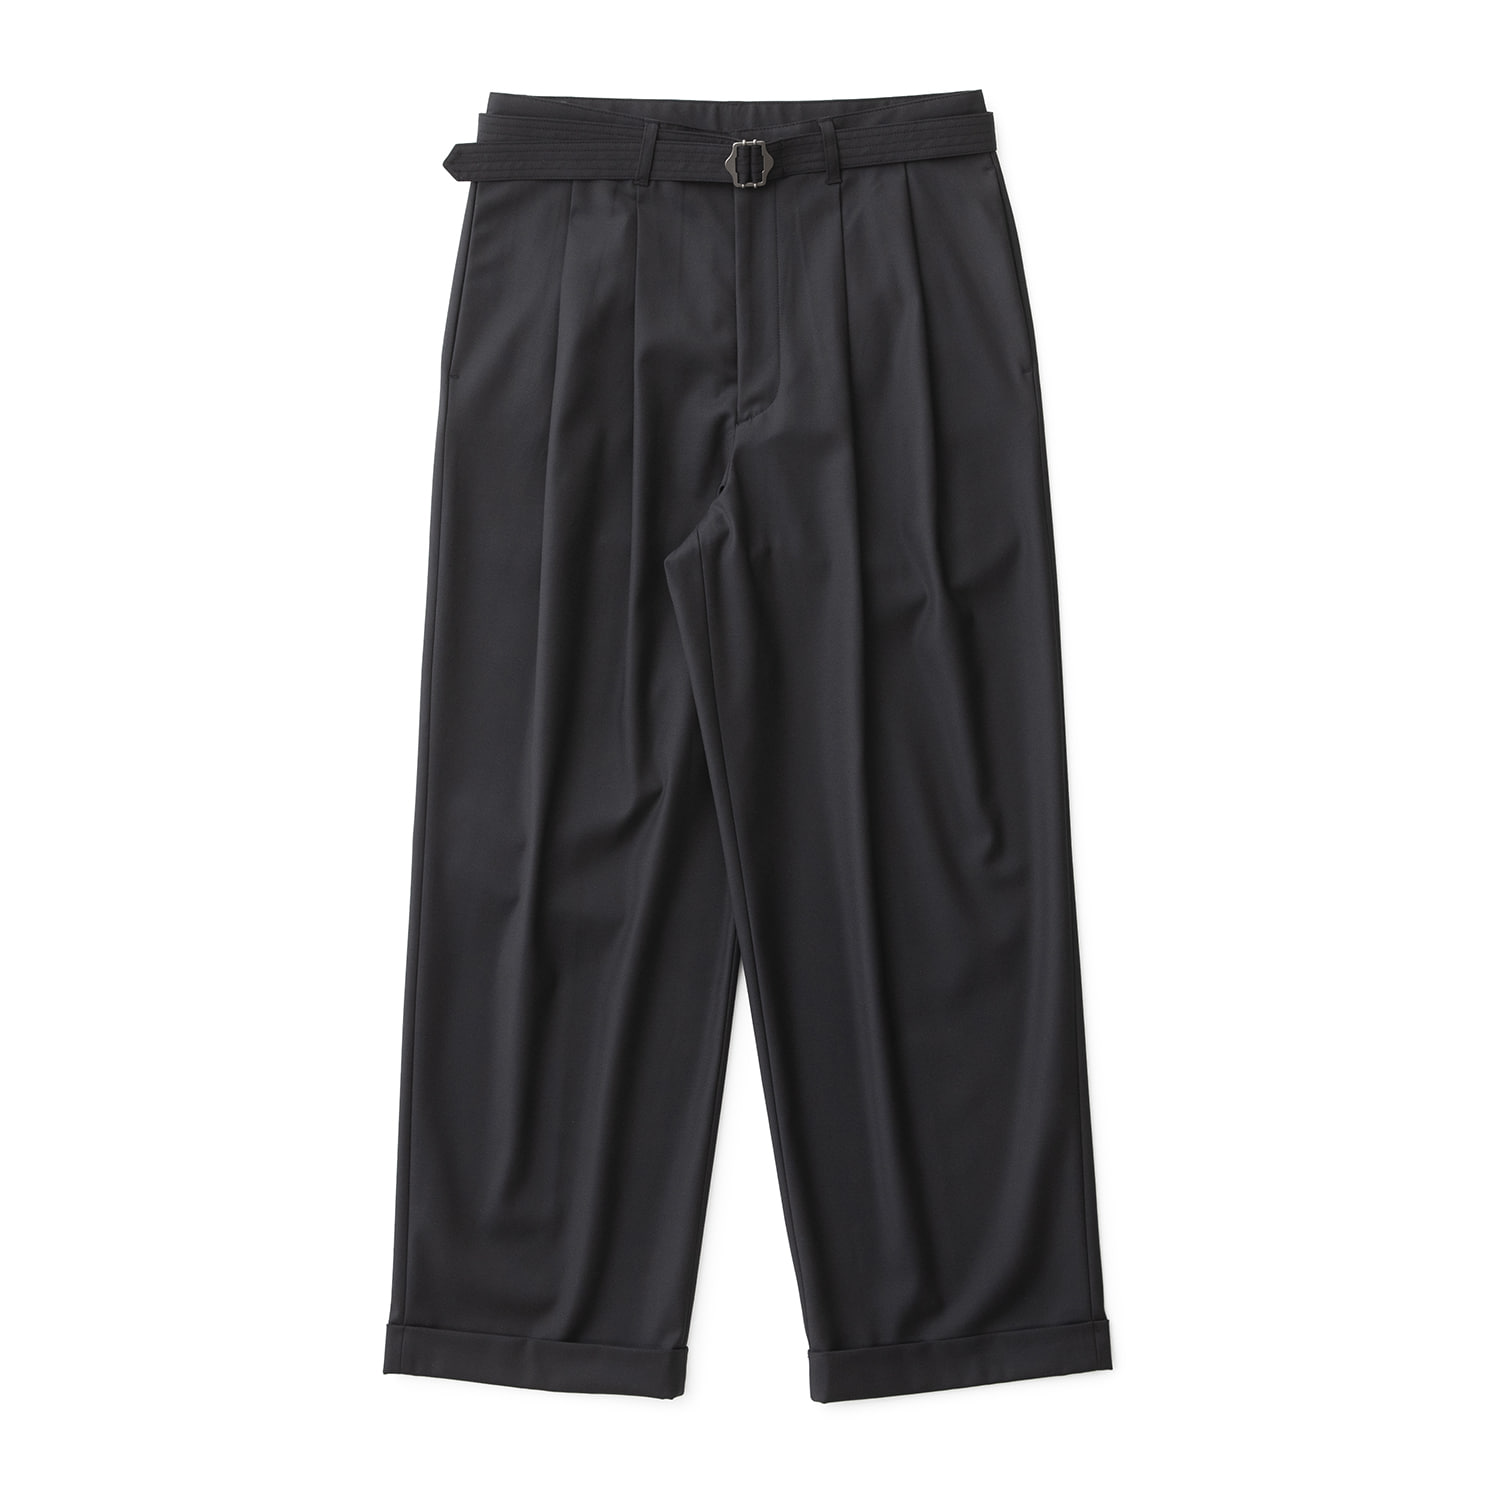 21SS Balance Turn Up Pants (Charcoal Blue)